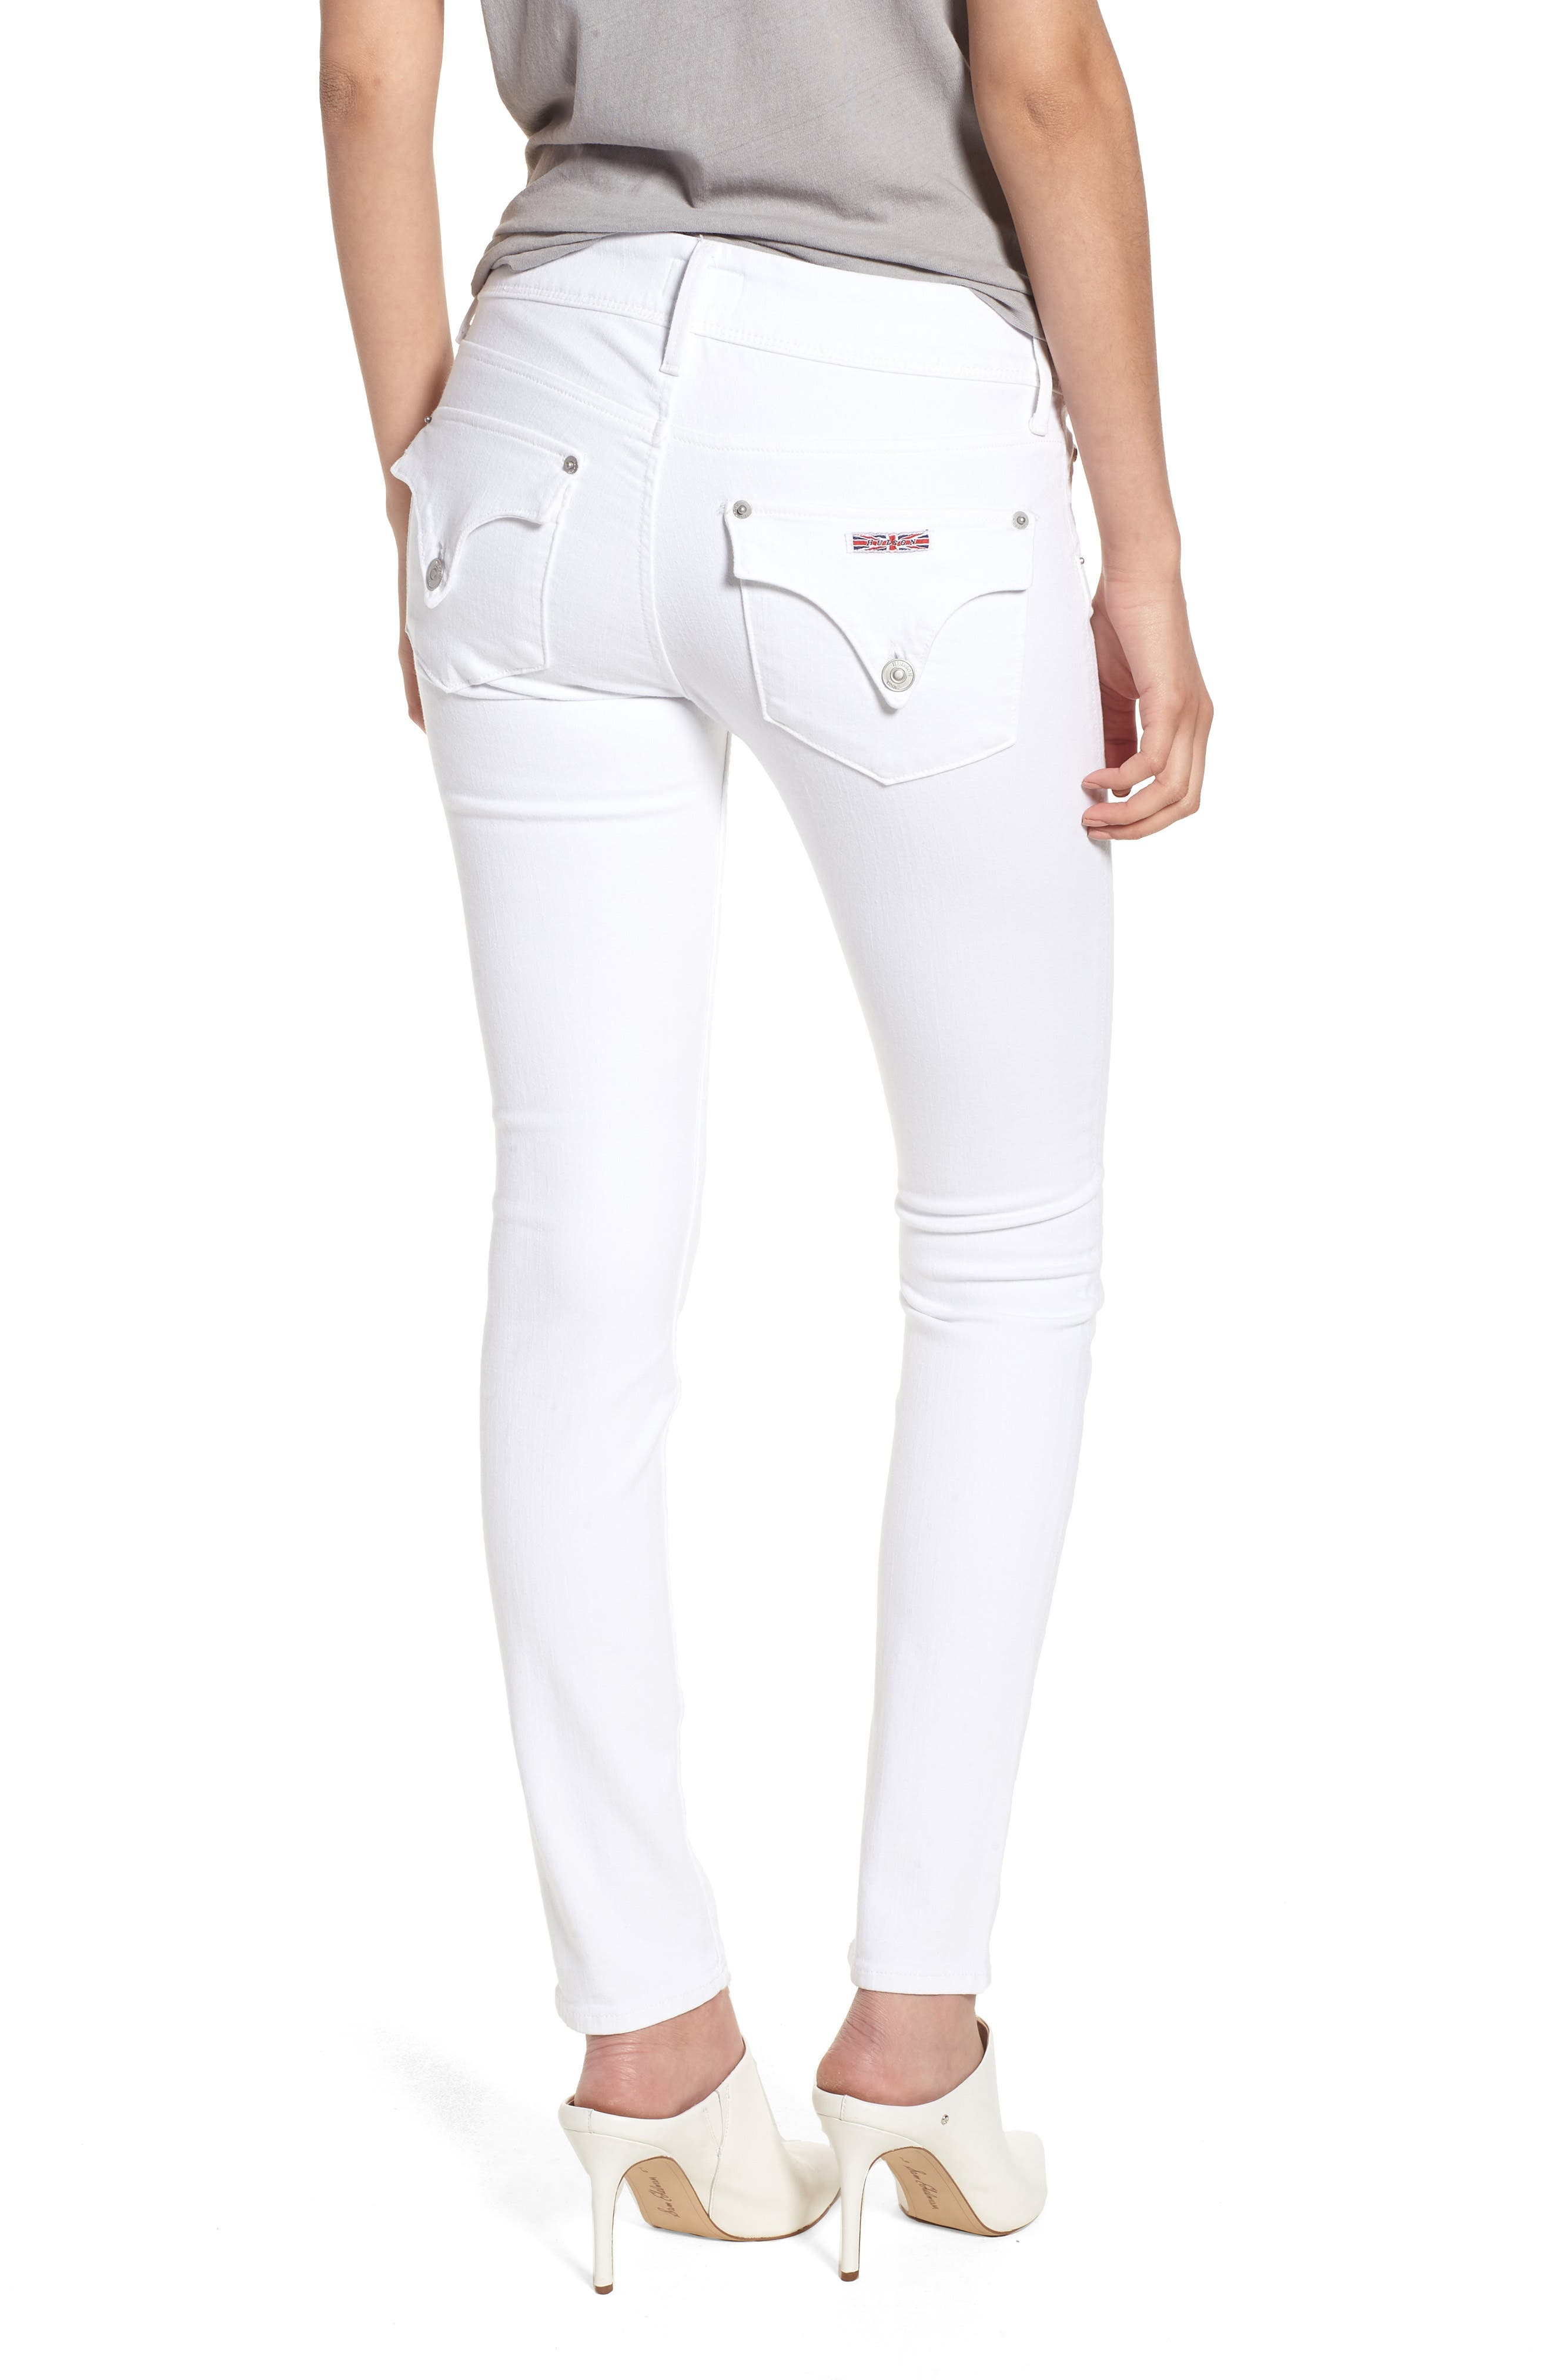 Collin Skinny Jeans,                             Alternate thumbnail 2, color,                             OPTICAL WHITE